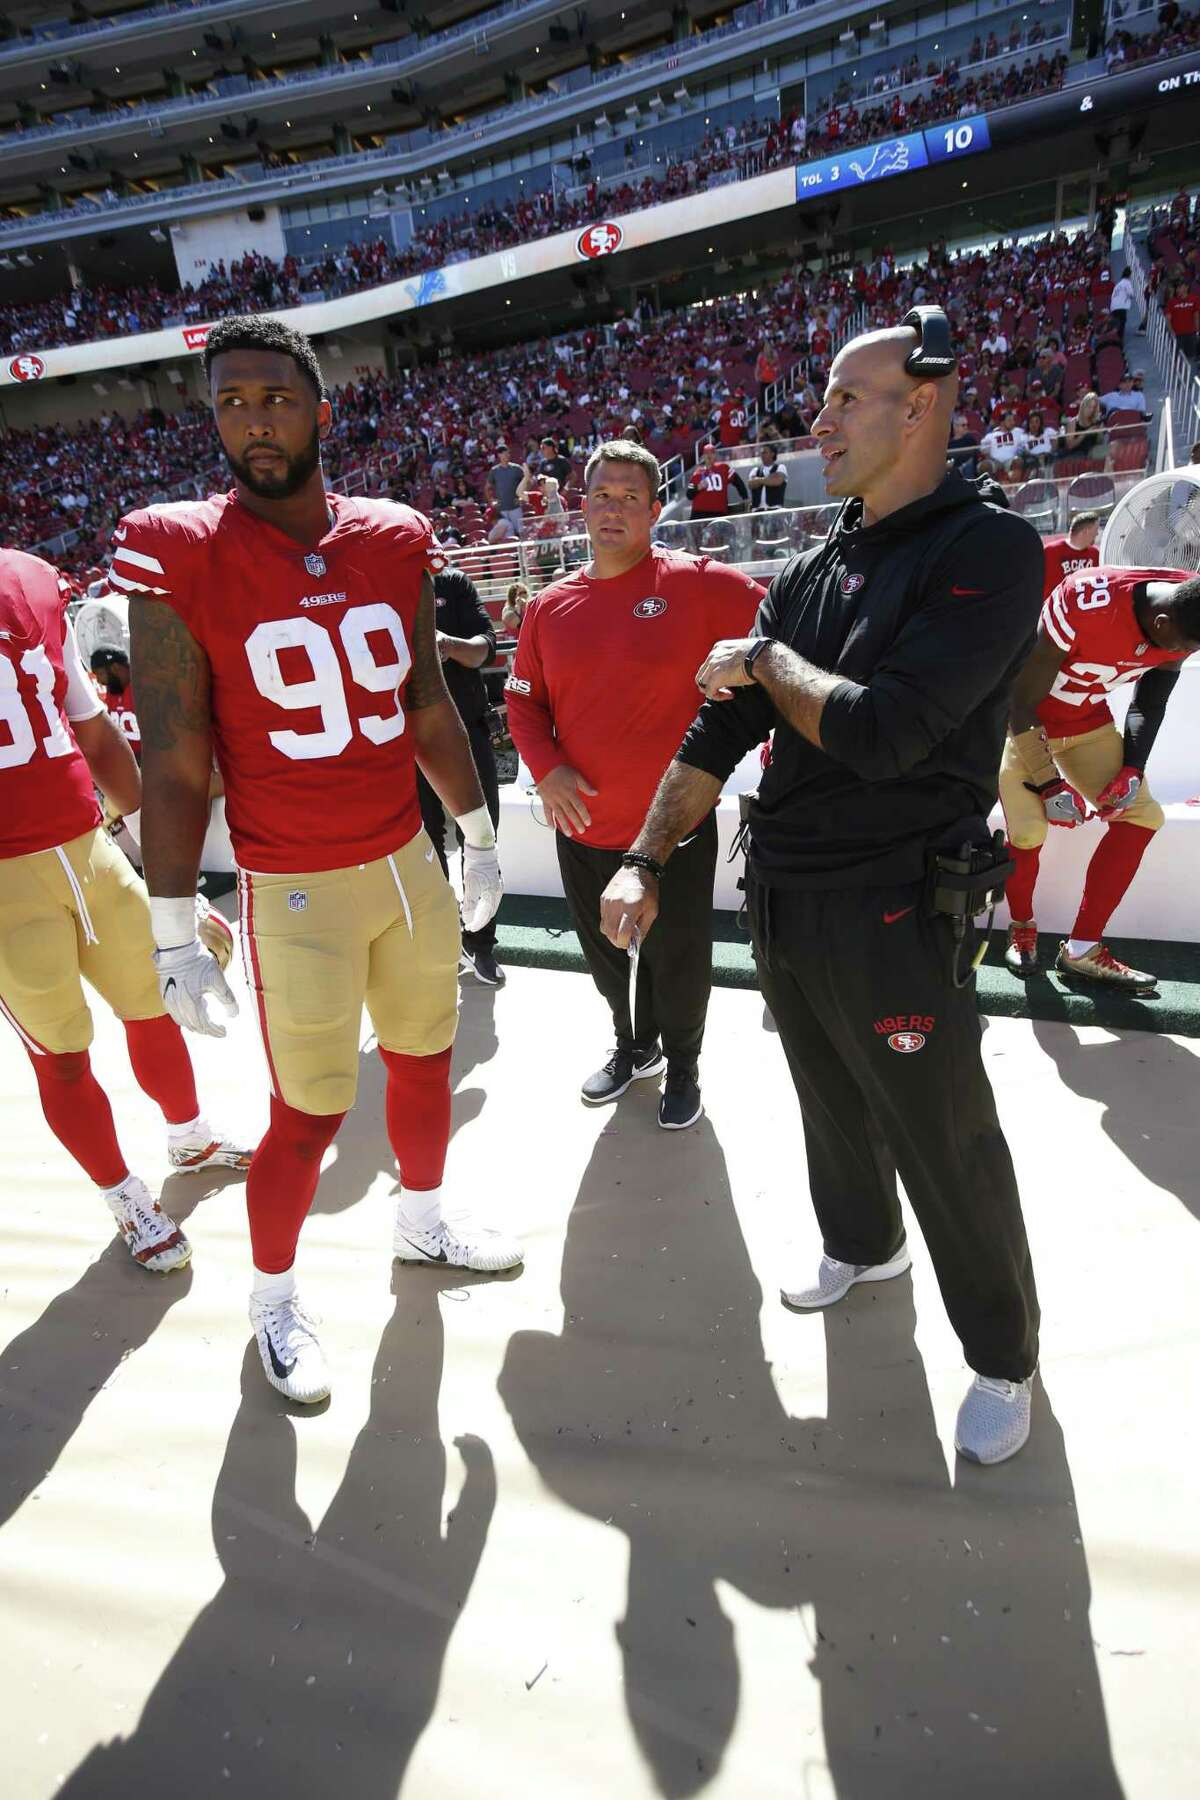 SANTA CLARA, CA - SEPTEMBER 16: DeForest Buckner #99 and Defensive Coordinator Robert Saleh of the San Francisco 49ers stand on the sideline during the game against the Detroit Lions at Levi Stadium on September 16, 2018 in Santa Clara, California. The 49ers defeated the Lions 30-27. (Photo by Michael Zagaris/San Francisco 49ers/Getty Images)